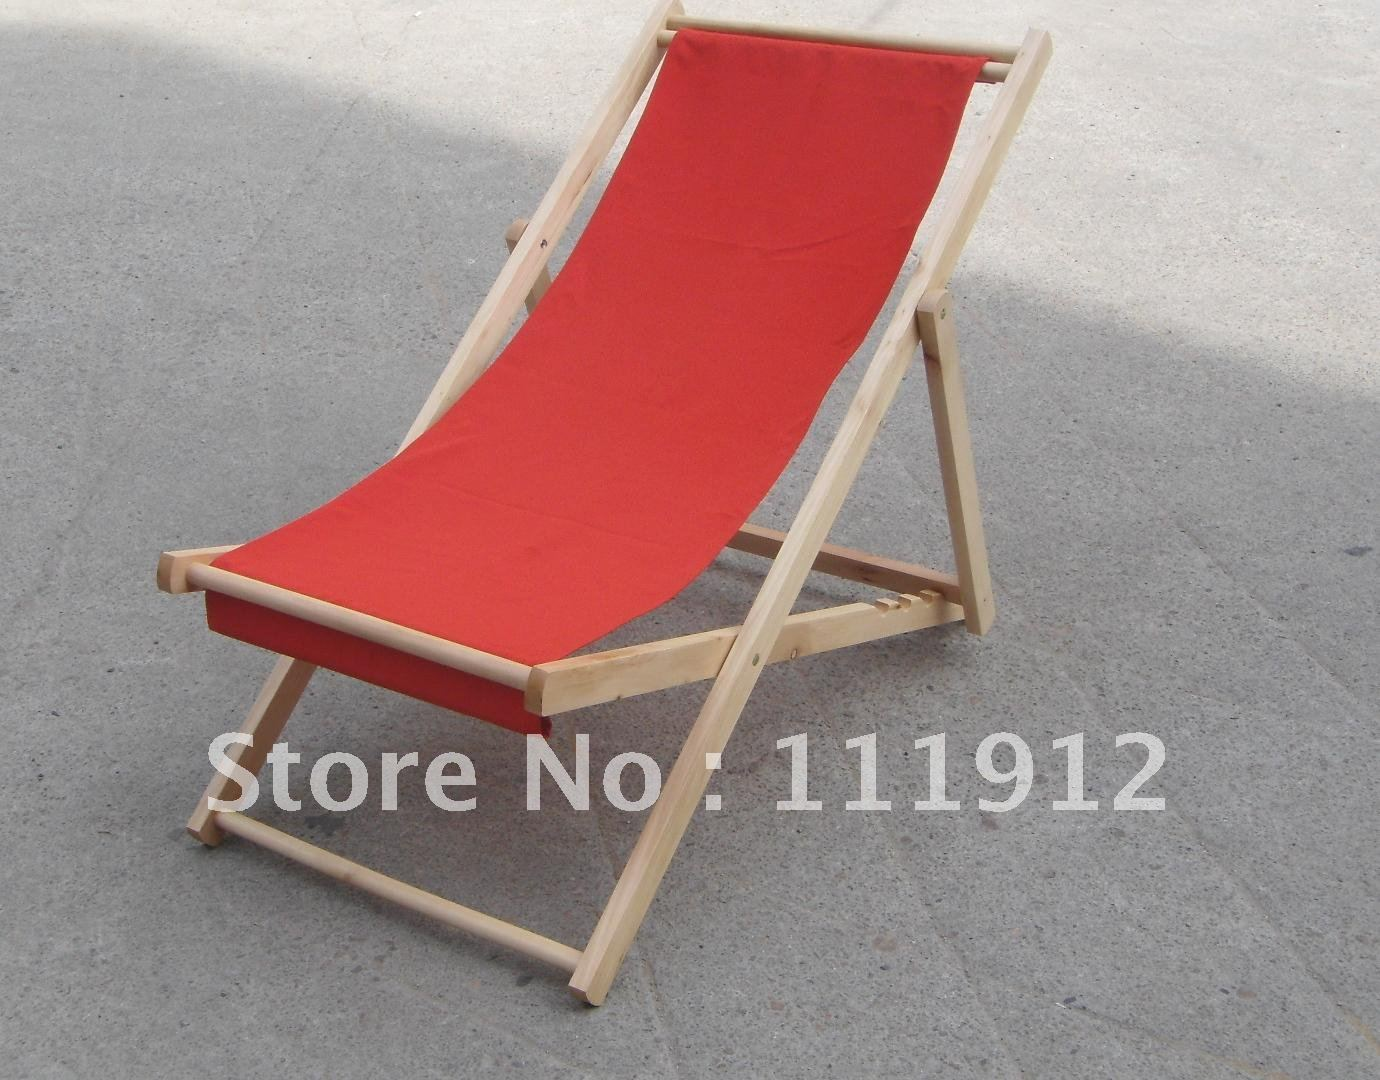 Wood Beach Chairs Swing Chair In Nepal Folding Hardwood Leisure From